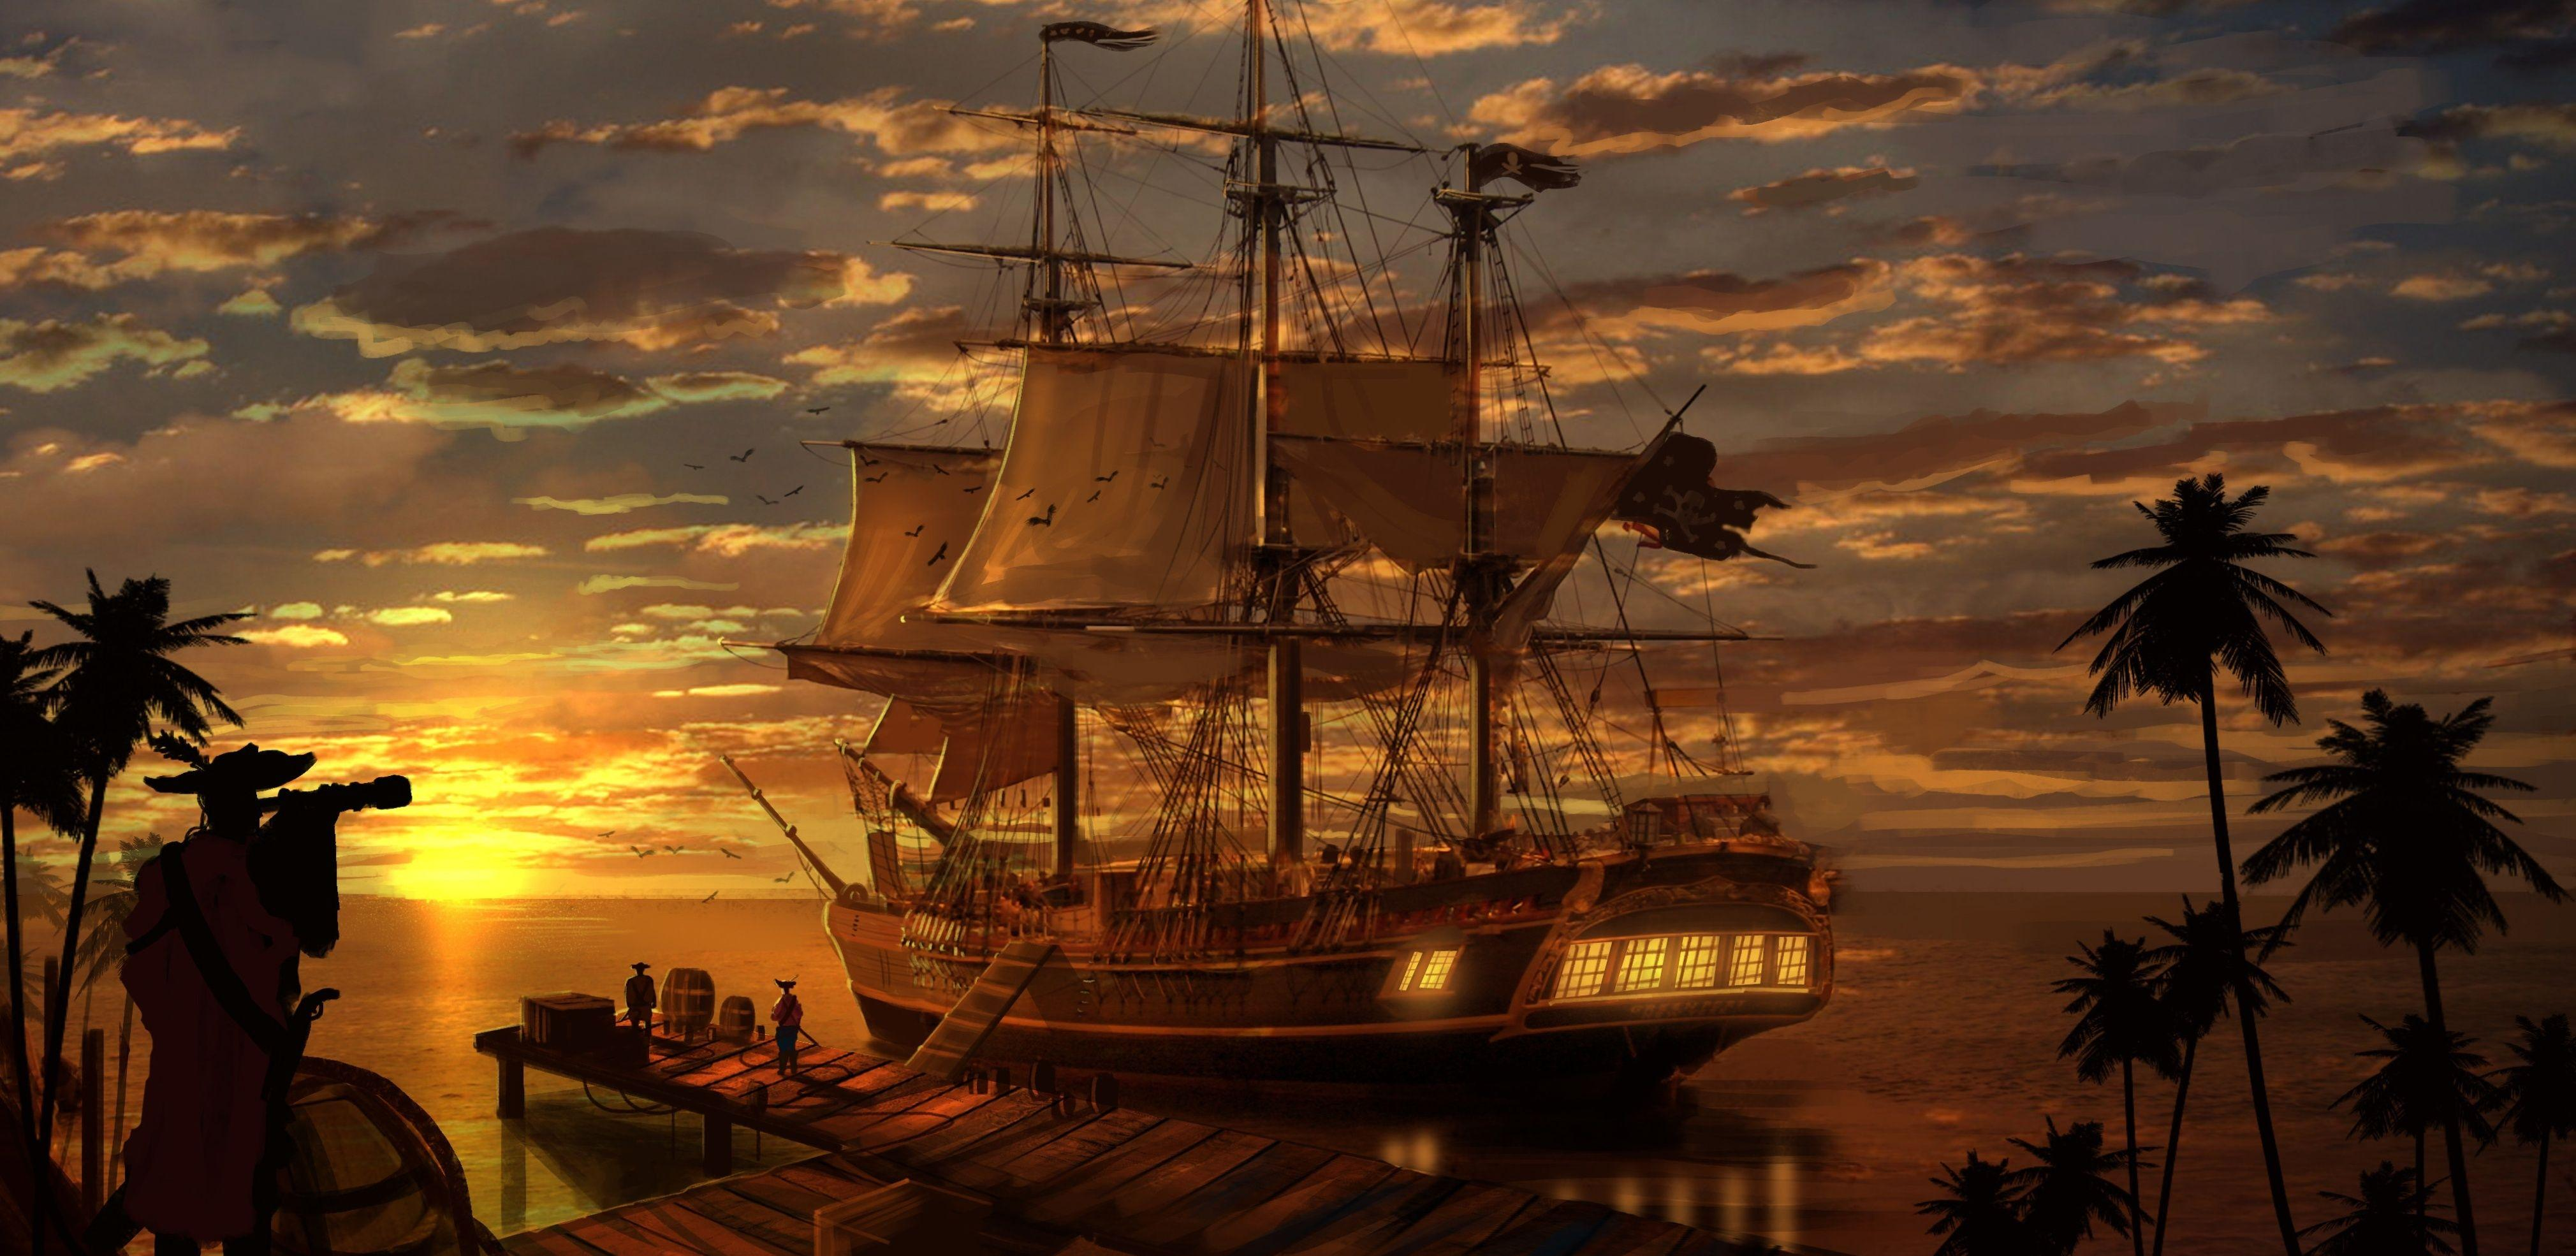 Animated pirate ship